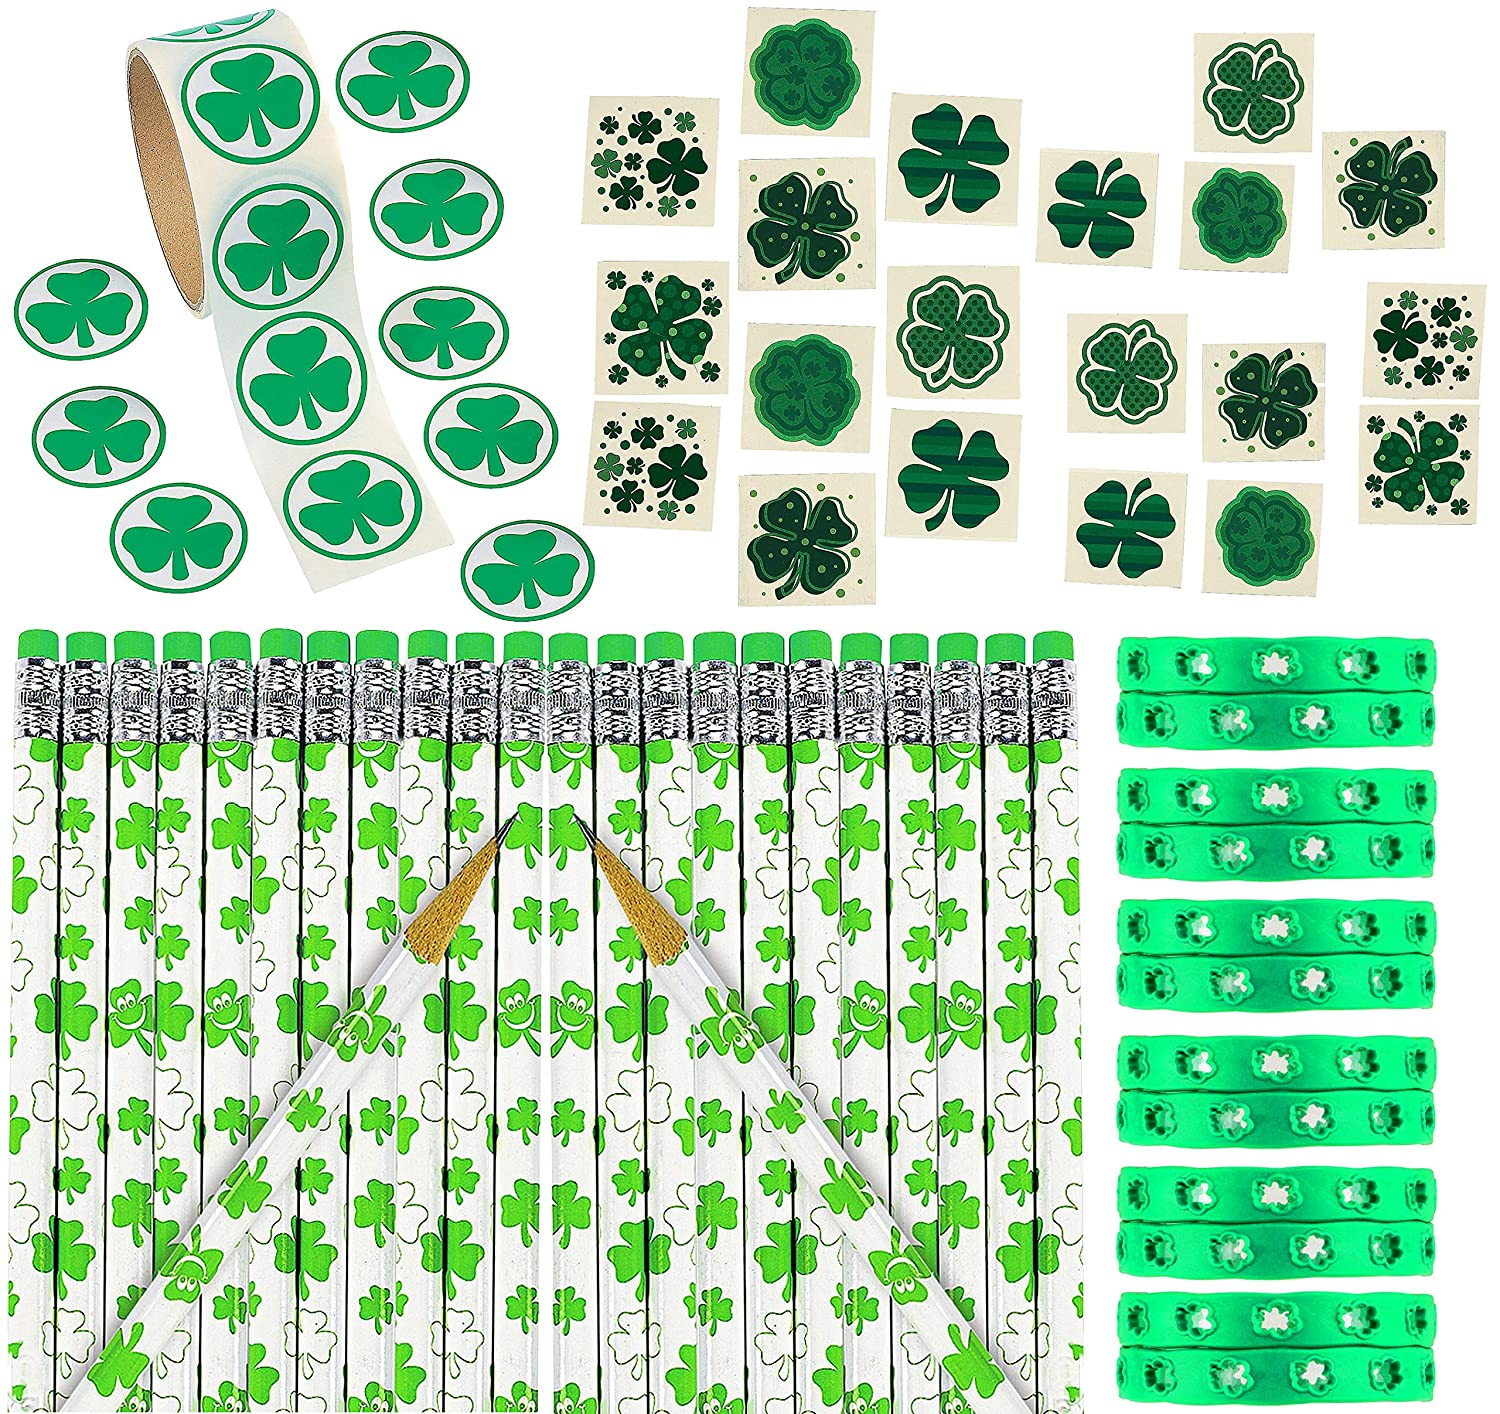 Roll of 100 Leaves Stickers 24 Green Irish Rubber Bracelets Fun Supplies for Kids By 4E/'s Novelty 4E/'s Novelty Patricks Day Shamrock Irish Accessories Party Favors 184 St Bulk Pack of 24 Patricks Day Pencils 36 Temporary Tattoos